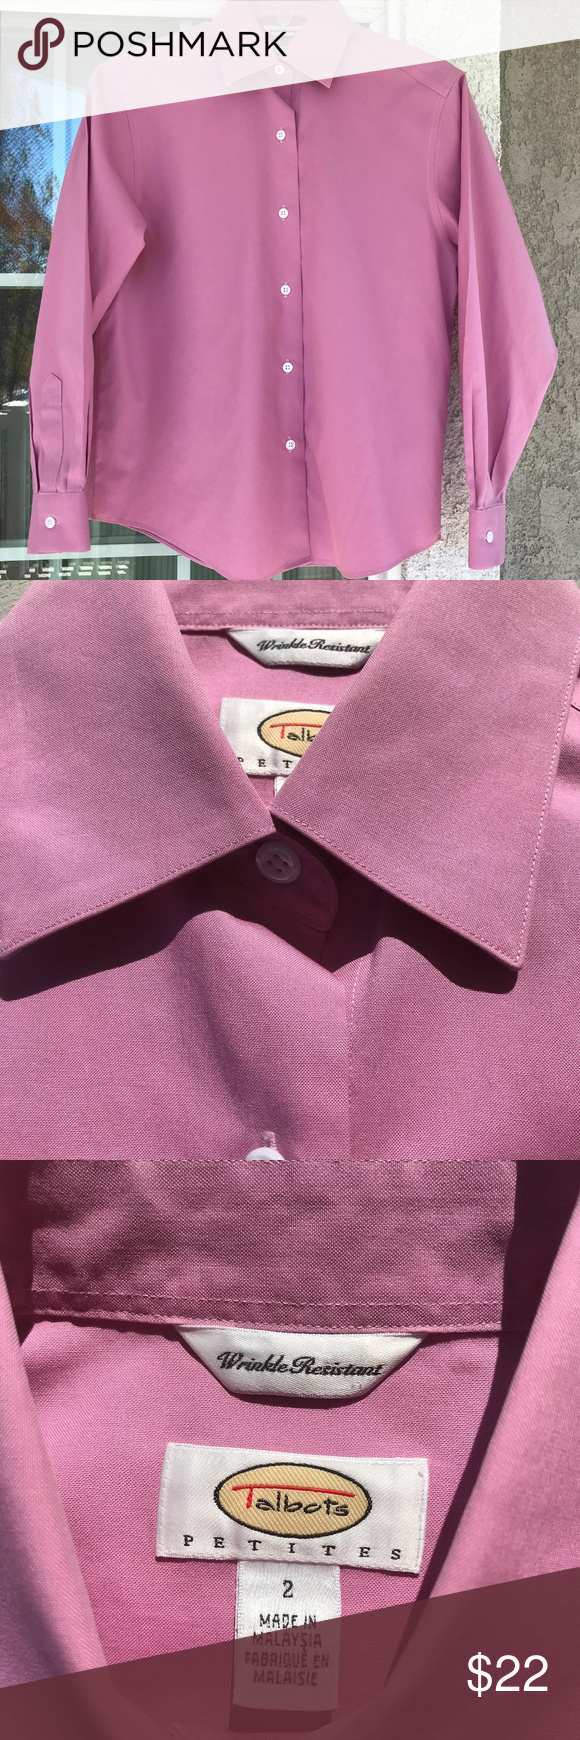 Talbots Petite Size 2p Pink L S B D Talbots Petite Size 2p Pink Long Sleeve Button Down No Rips Stains Or Tears Extra Manu Petite Size Talbots Clothes Design